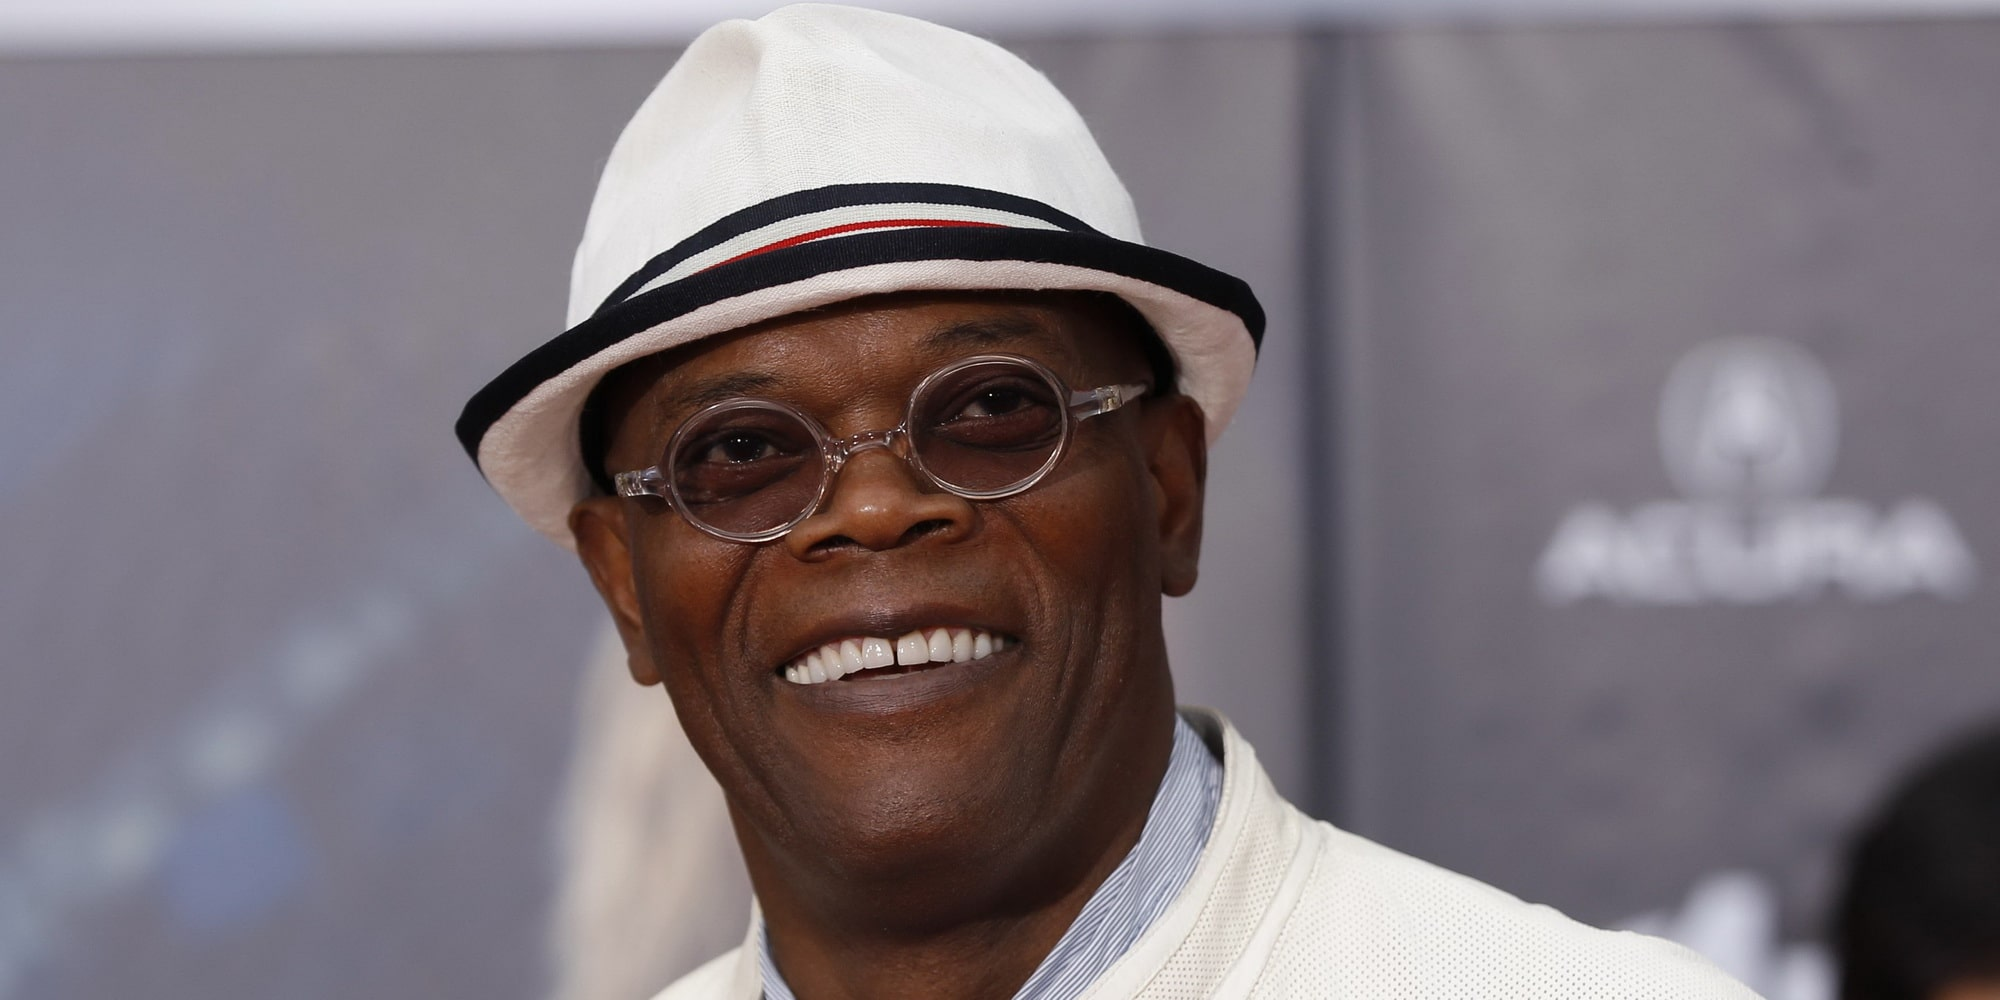 samuel l jackson net worth - HD 1920×1080